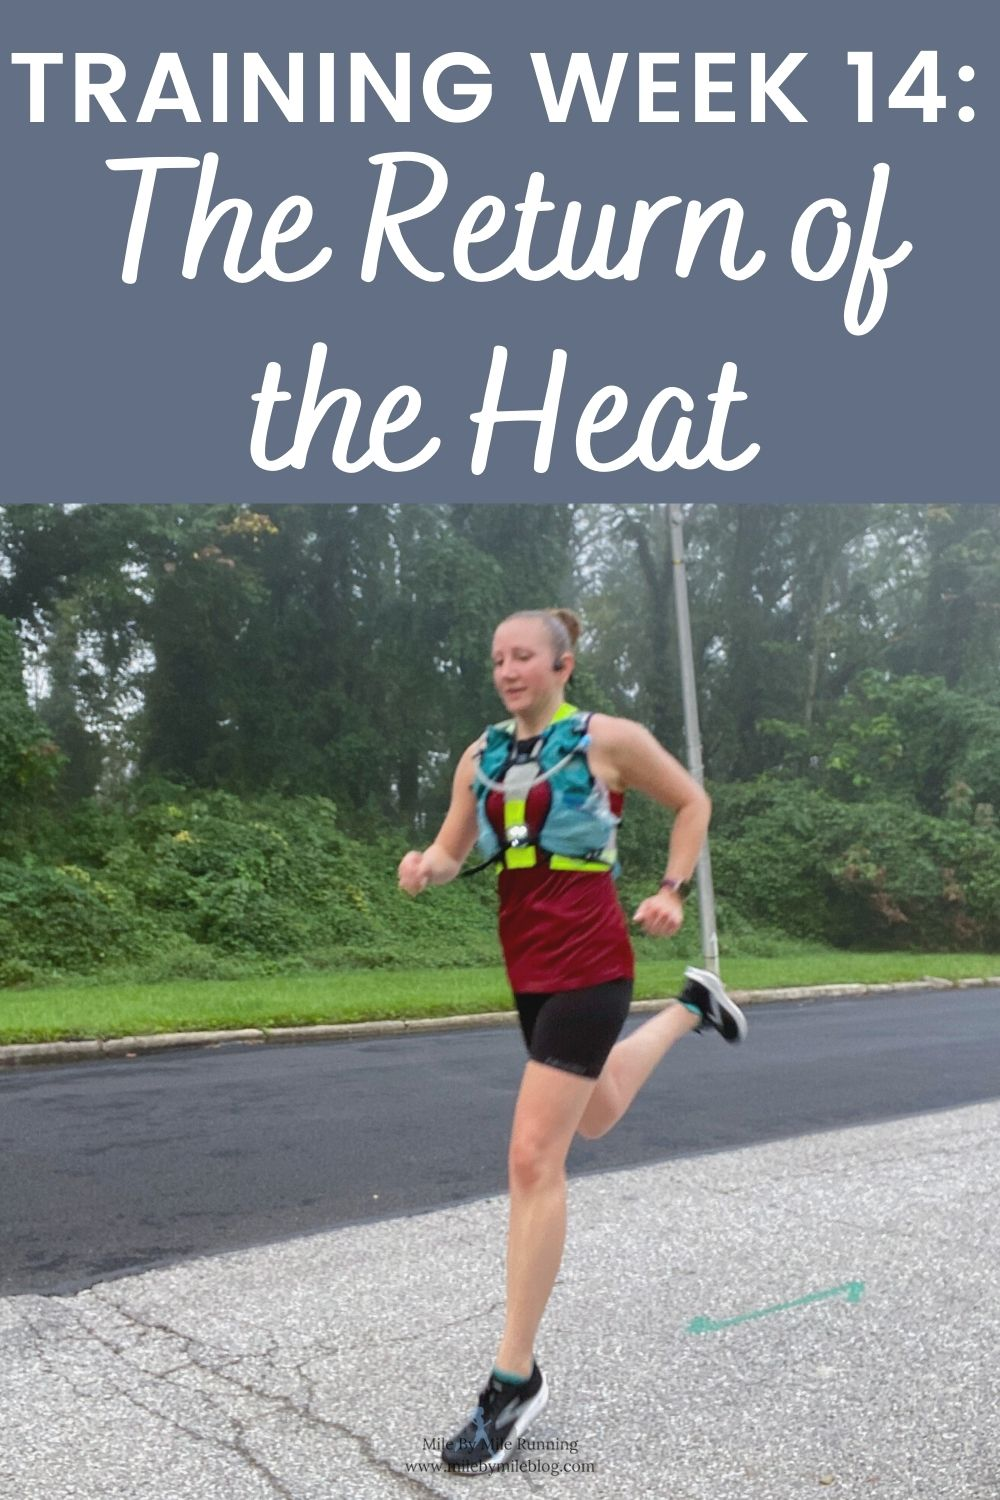 After a few weeks of cooler weather, the heat is back. Just when my runs were feeling more comfortable and I was getting more confident, this week set me back again. I've learned during this training cycle how much the heat impacts me, but now my concern is that it will be warm on race day. I guess the good news is that I trained through the heat all summer, so I'll be prepared for it. But I was really counting on some cooler weather to make running feel a bit easier at this point in the season!